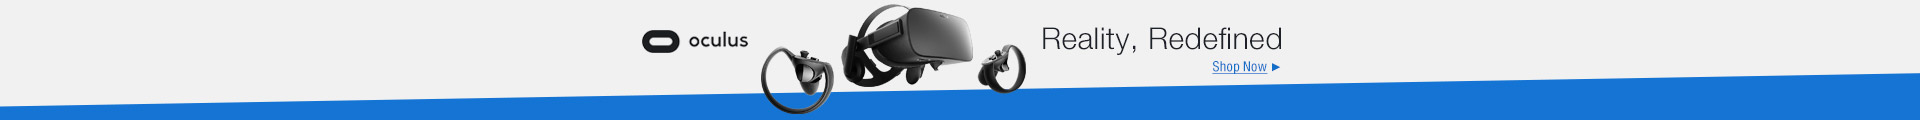 Oculus reality, redefined